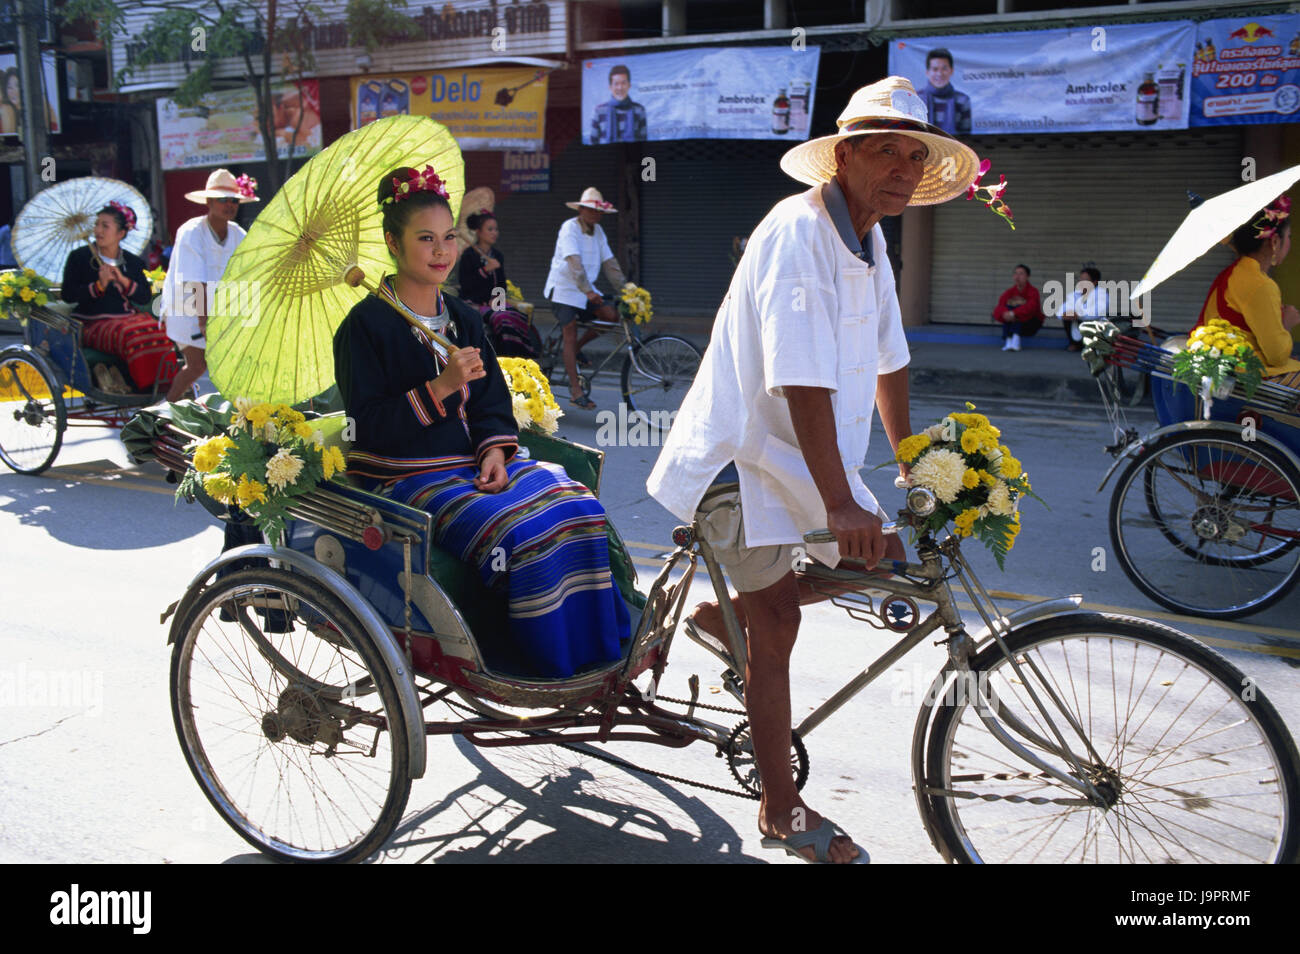 Thailand,Chiang May,flower festival,save,bicycle rickshas,floral decoration,women,display screen,sit,no model release,Asia,Nordthailand,feast,festival,holiday,person,locals,Asian,men,drivers,rickshas,transport,personal - Stock Image